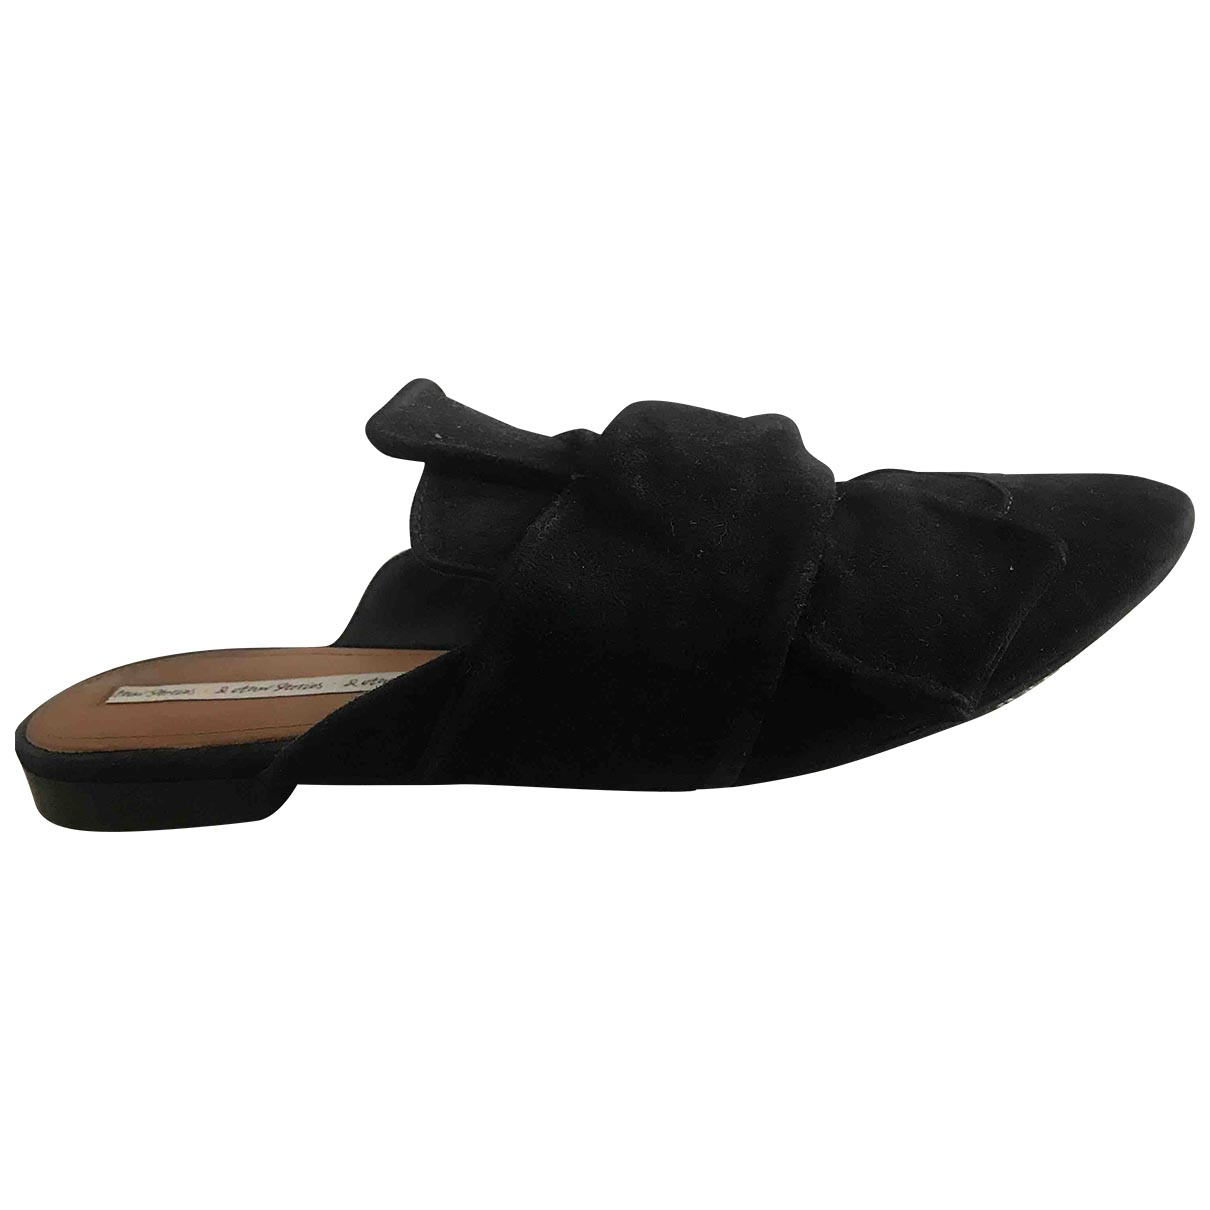 & Stories \N Black Suede Flats for Women 41 EU